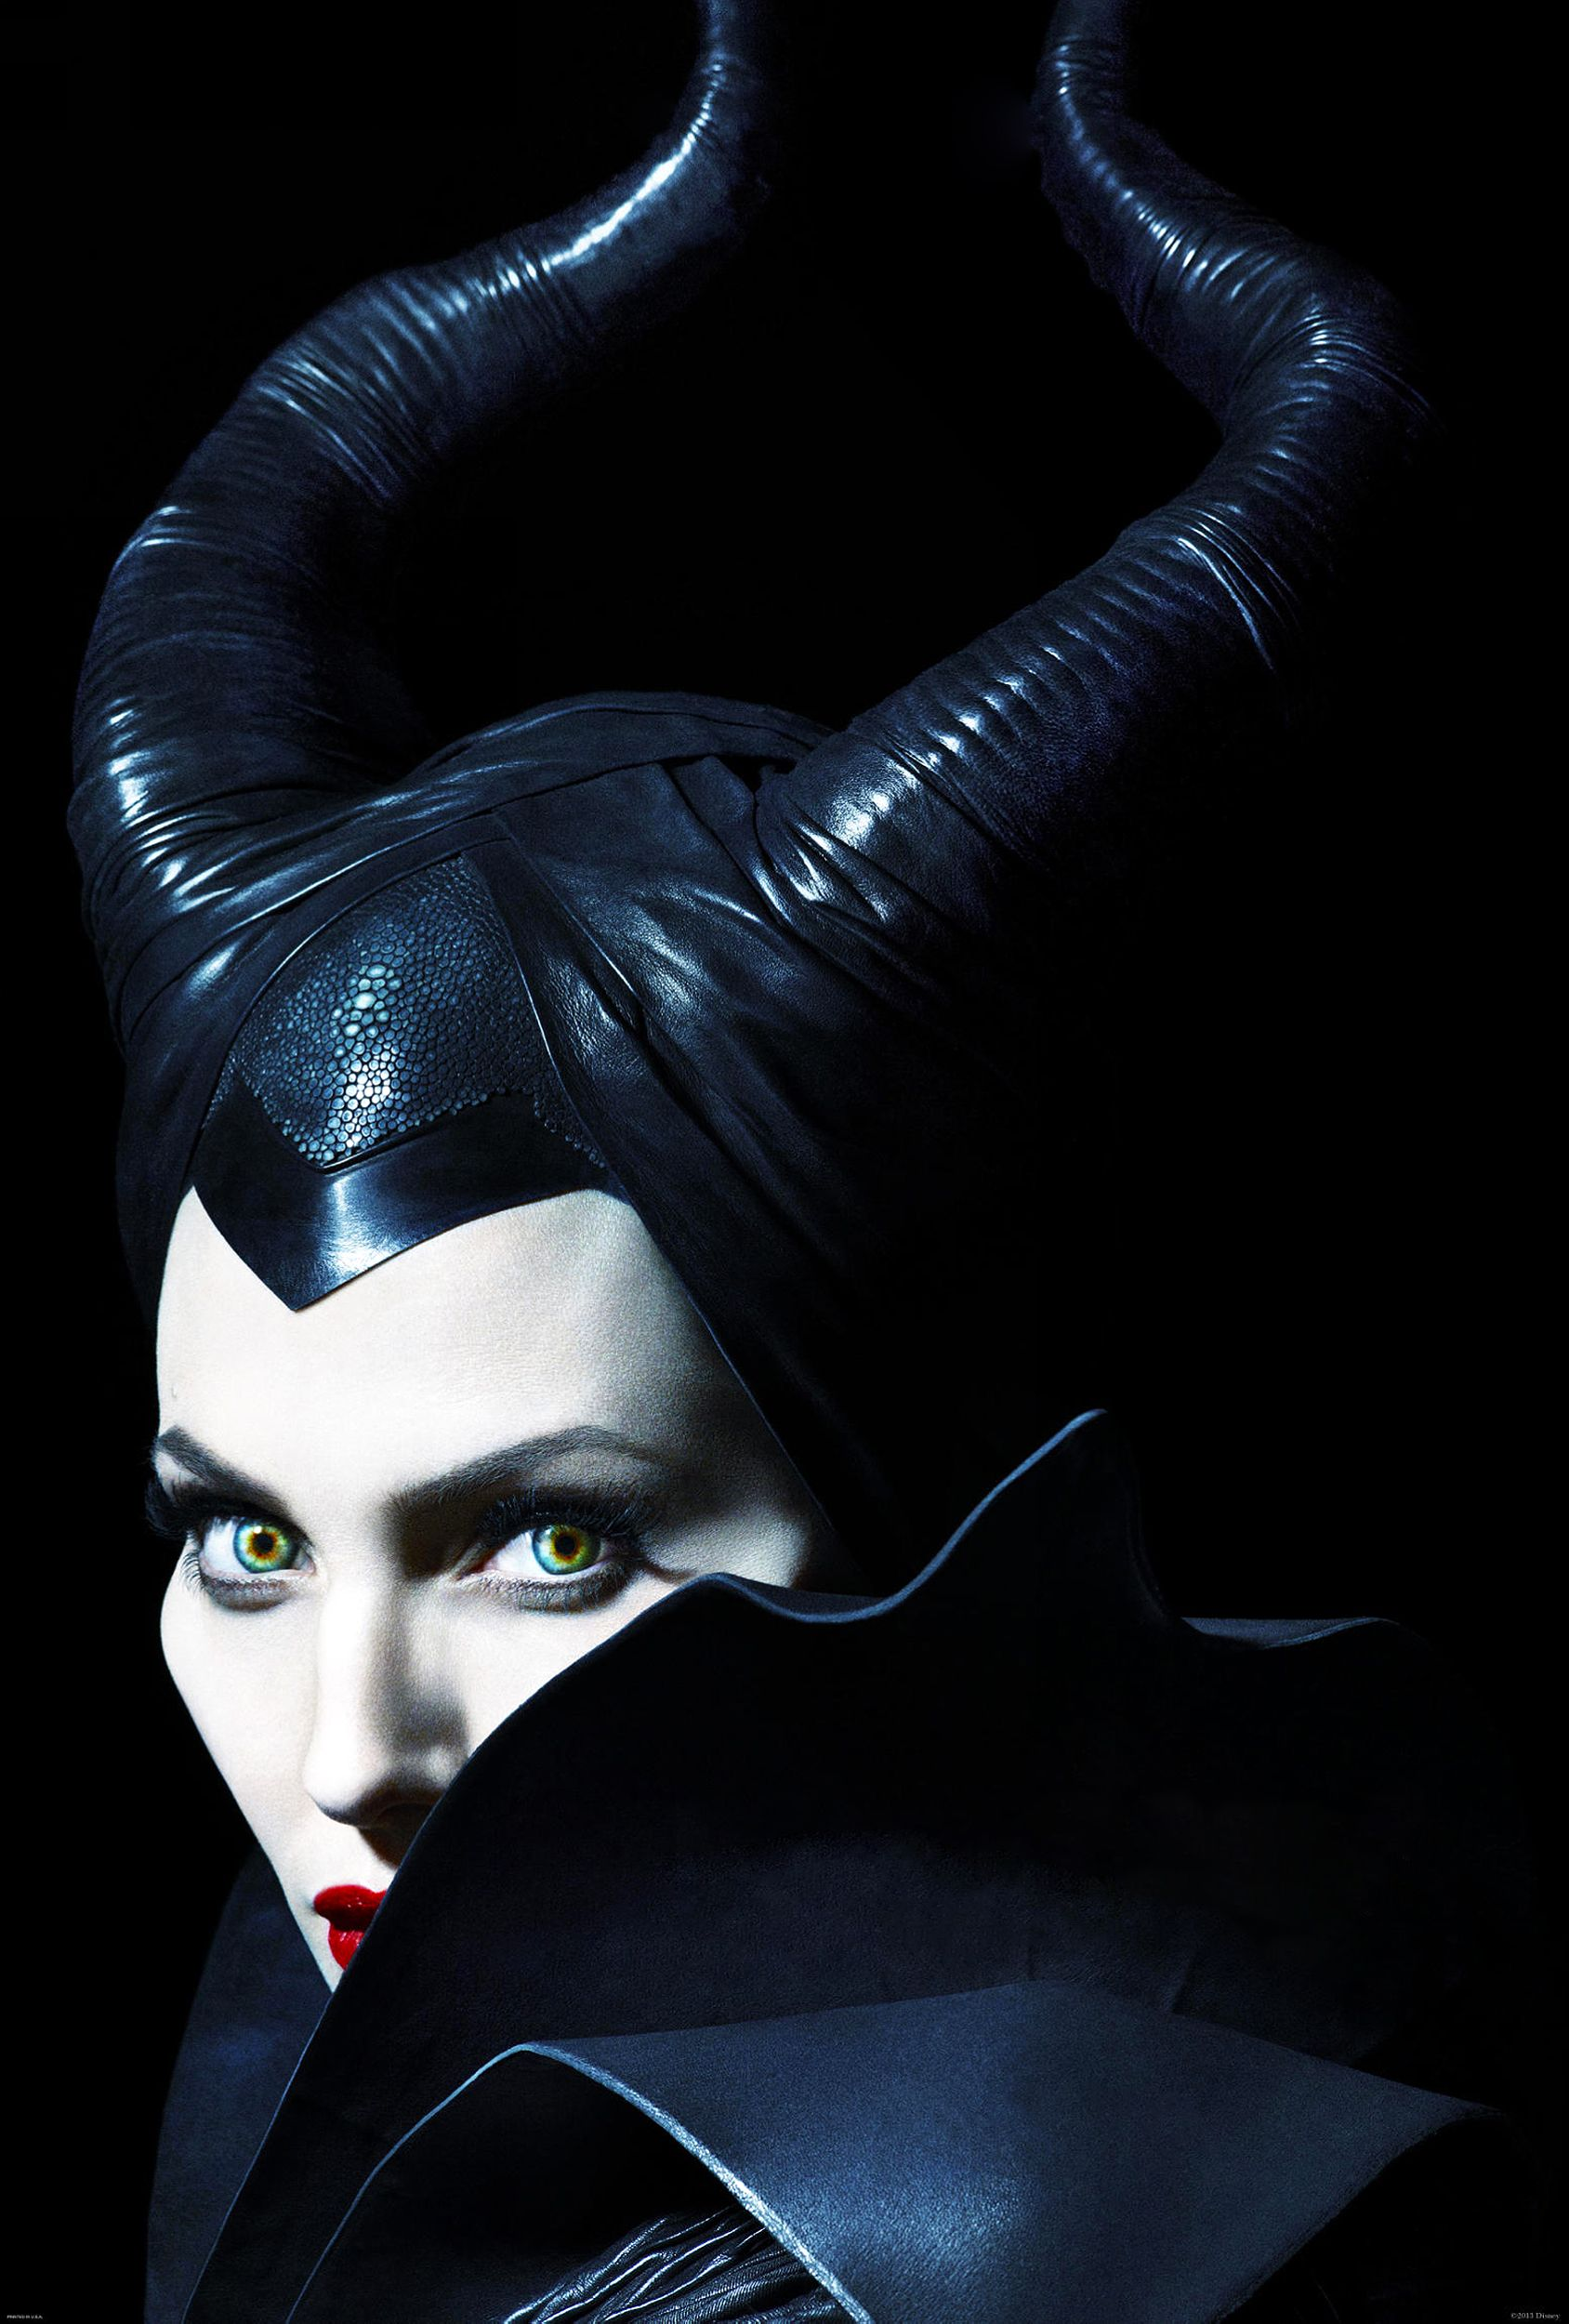 Poster 1 Textless Frases 3 Malefica Pelicula